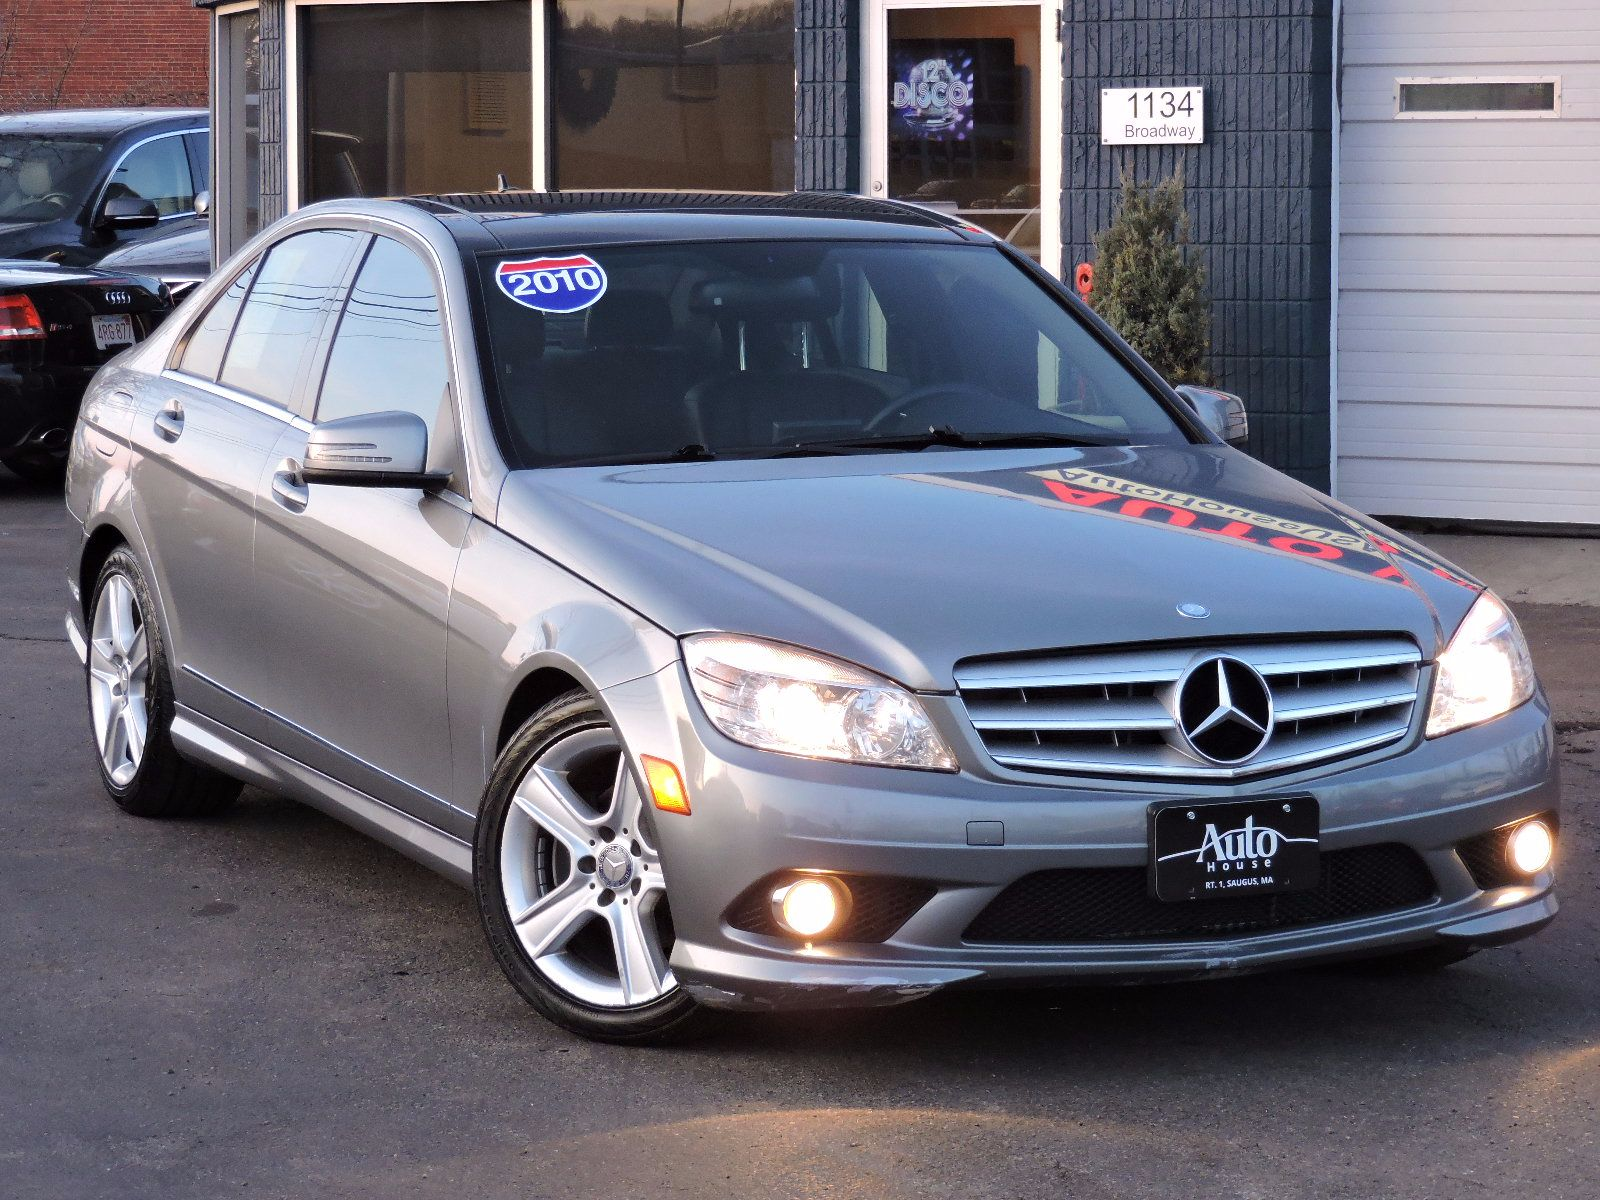 Used 2010 mercedes benz c class c300 sport at auto house for Mercedes benz car loan rates